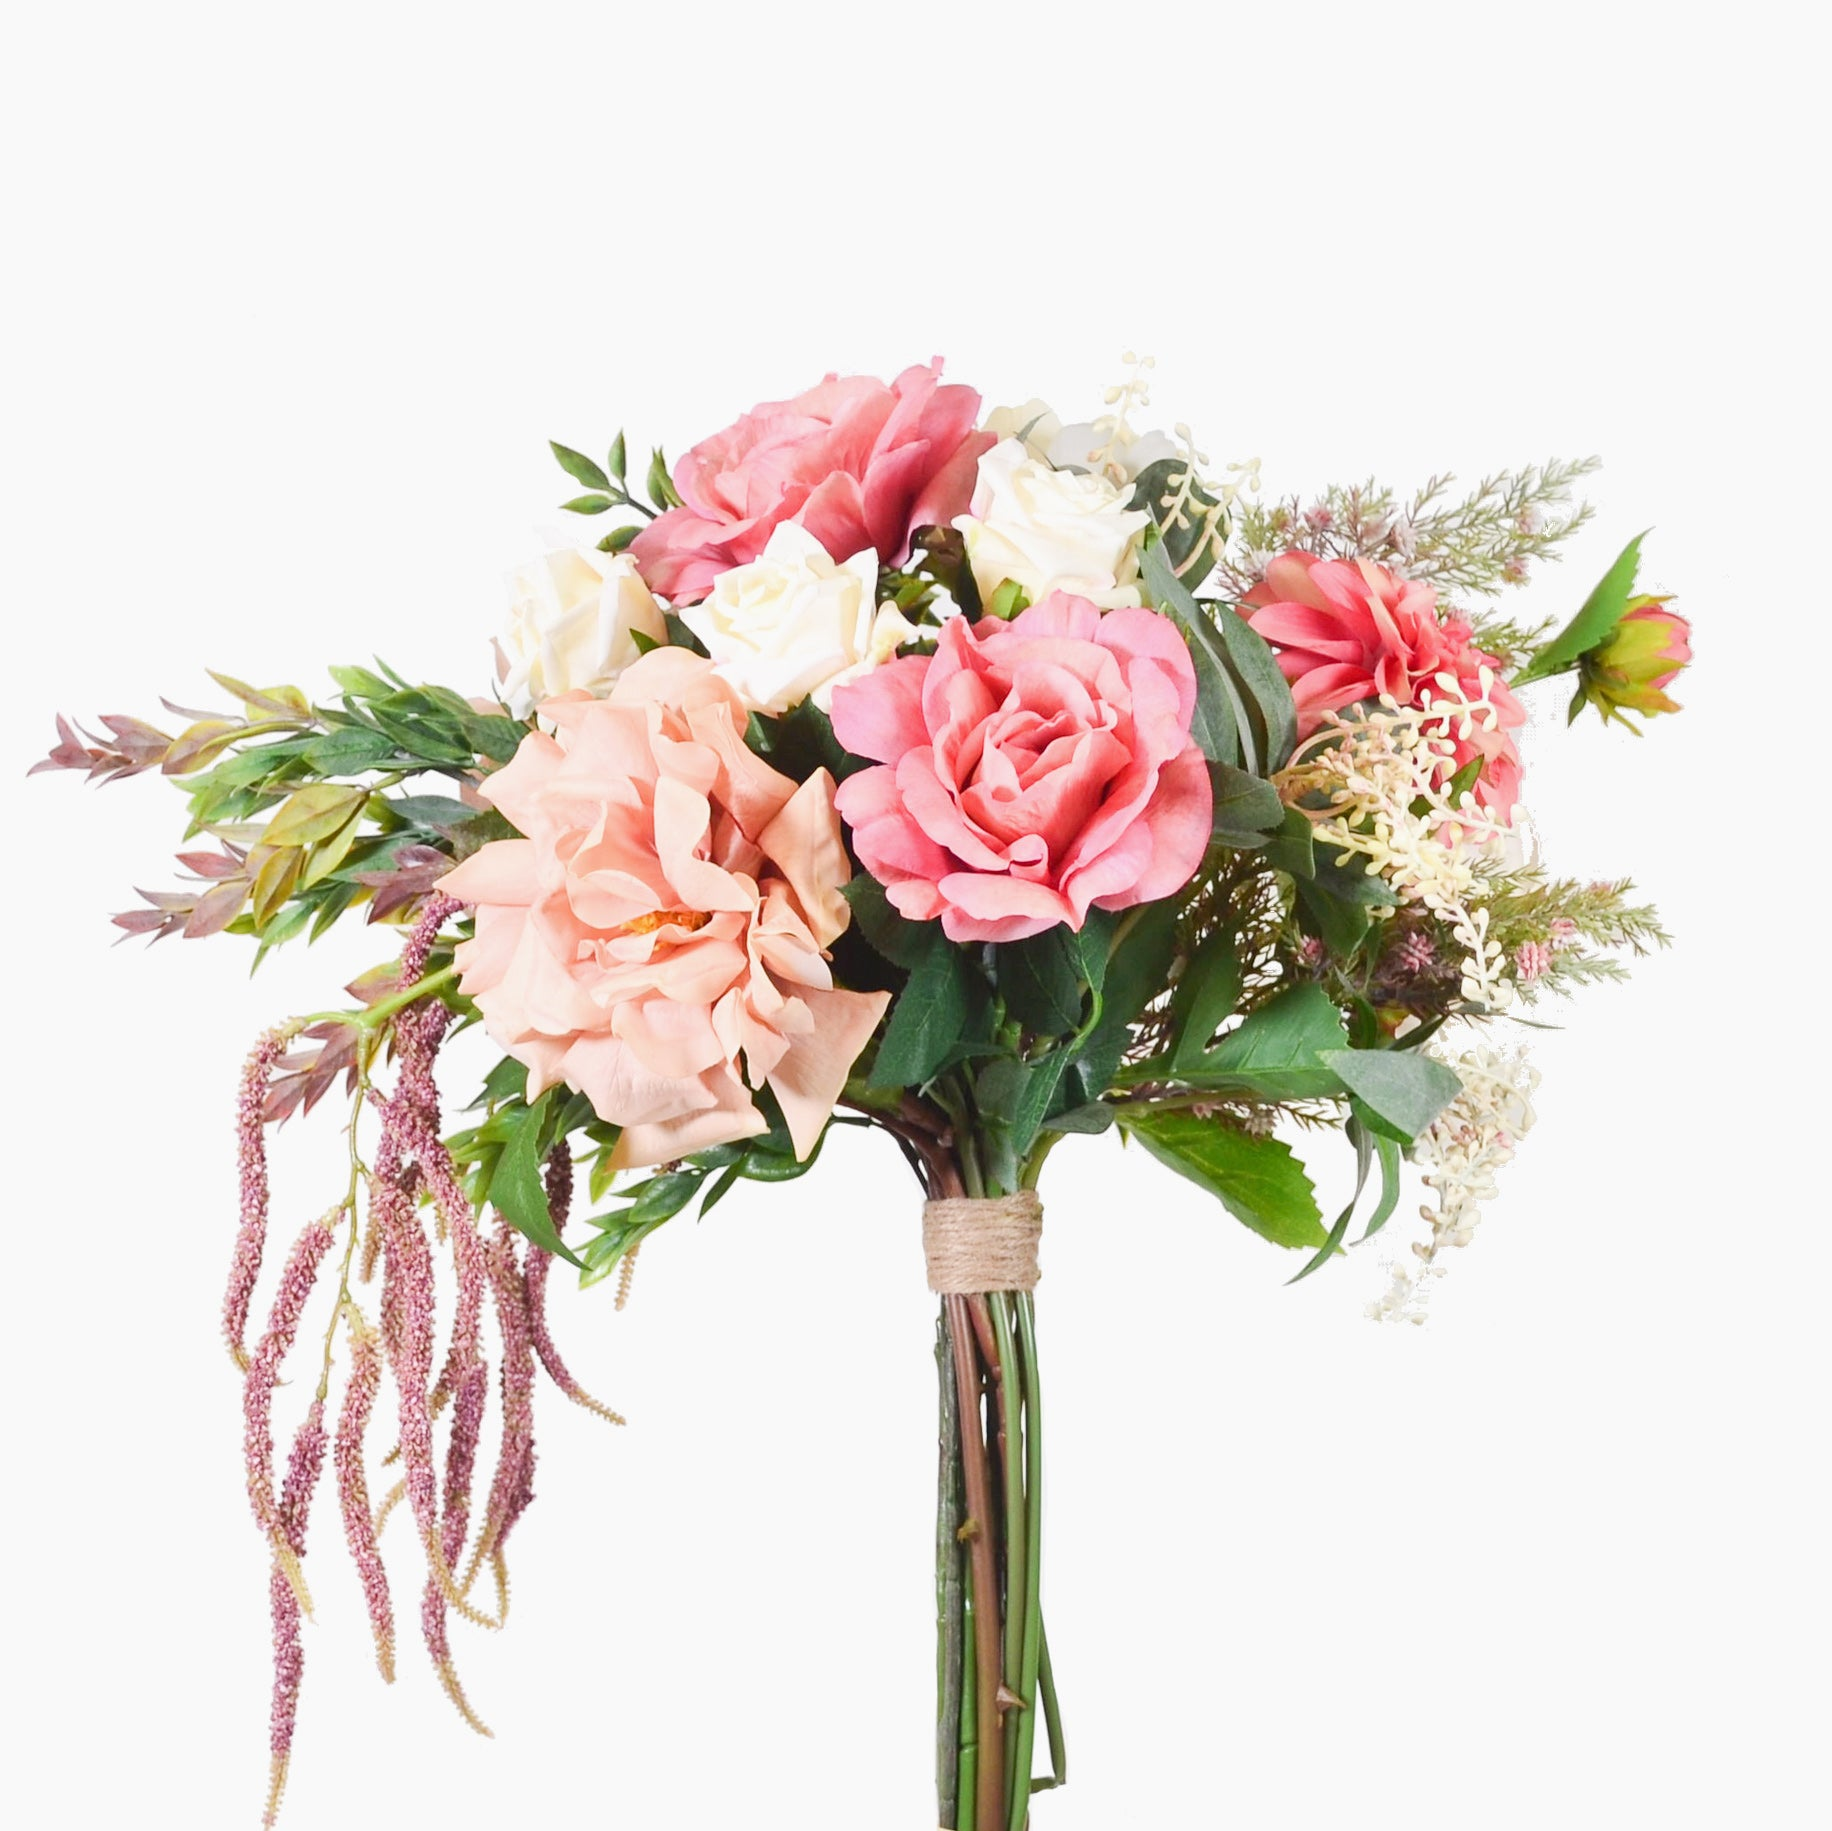 Mixed roses, dahlia and amaranthus with mixed foliage